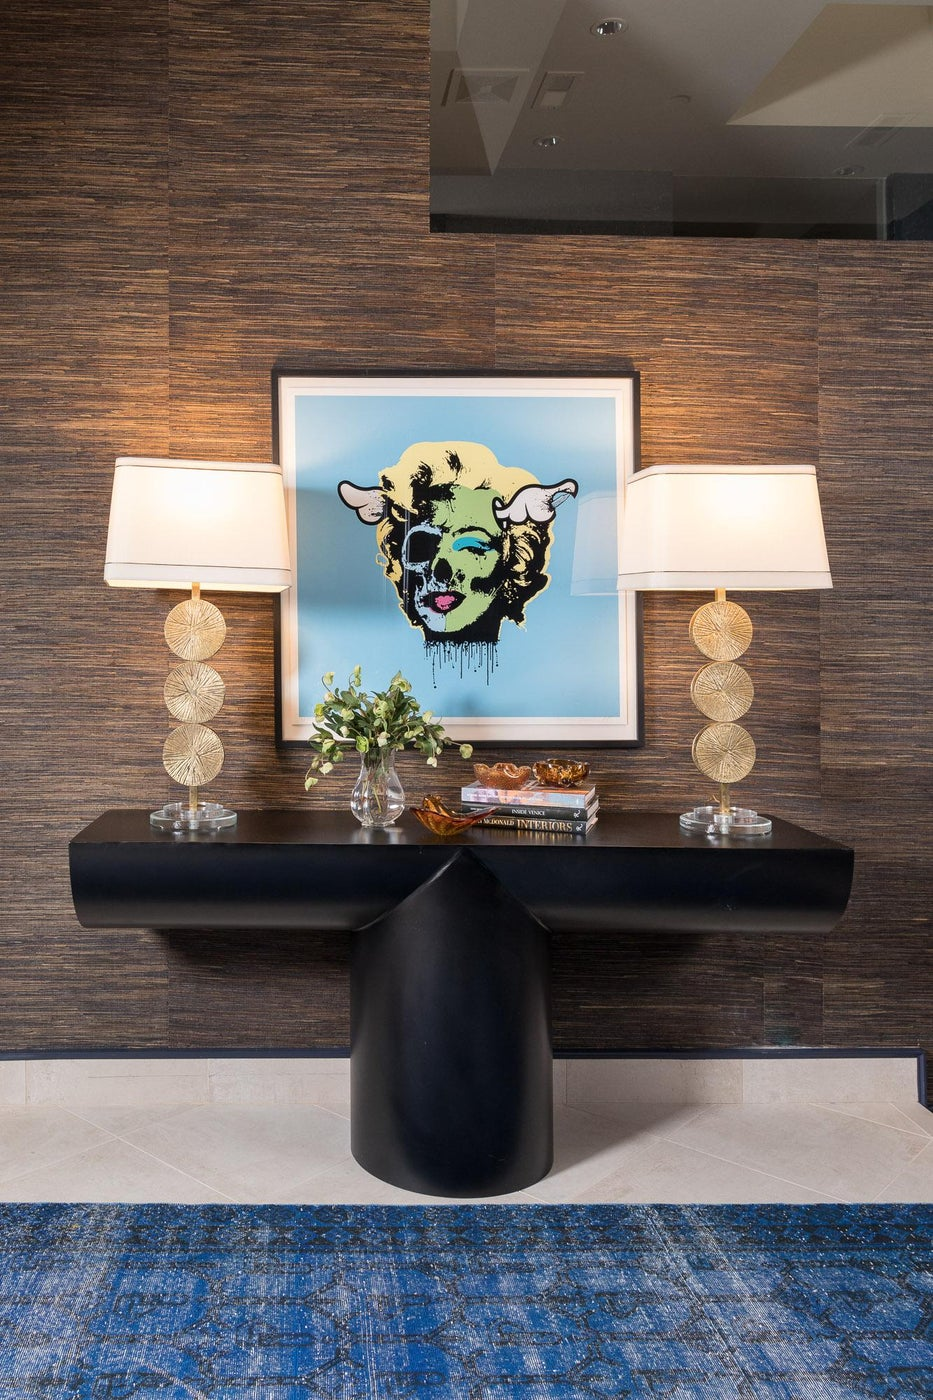 Penthouse foyer featuring vintage lamps and modern art